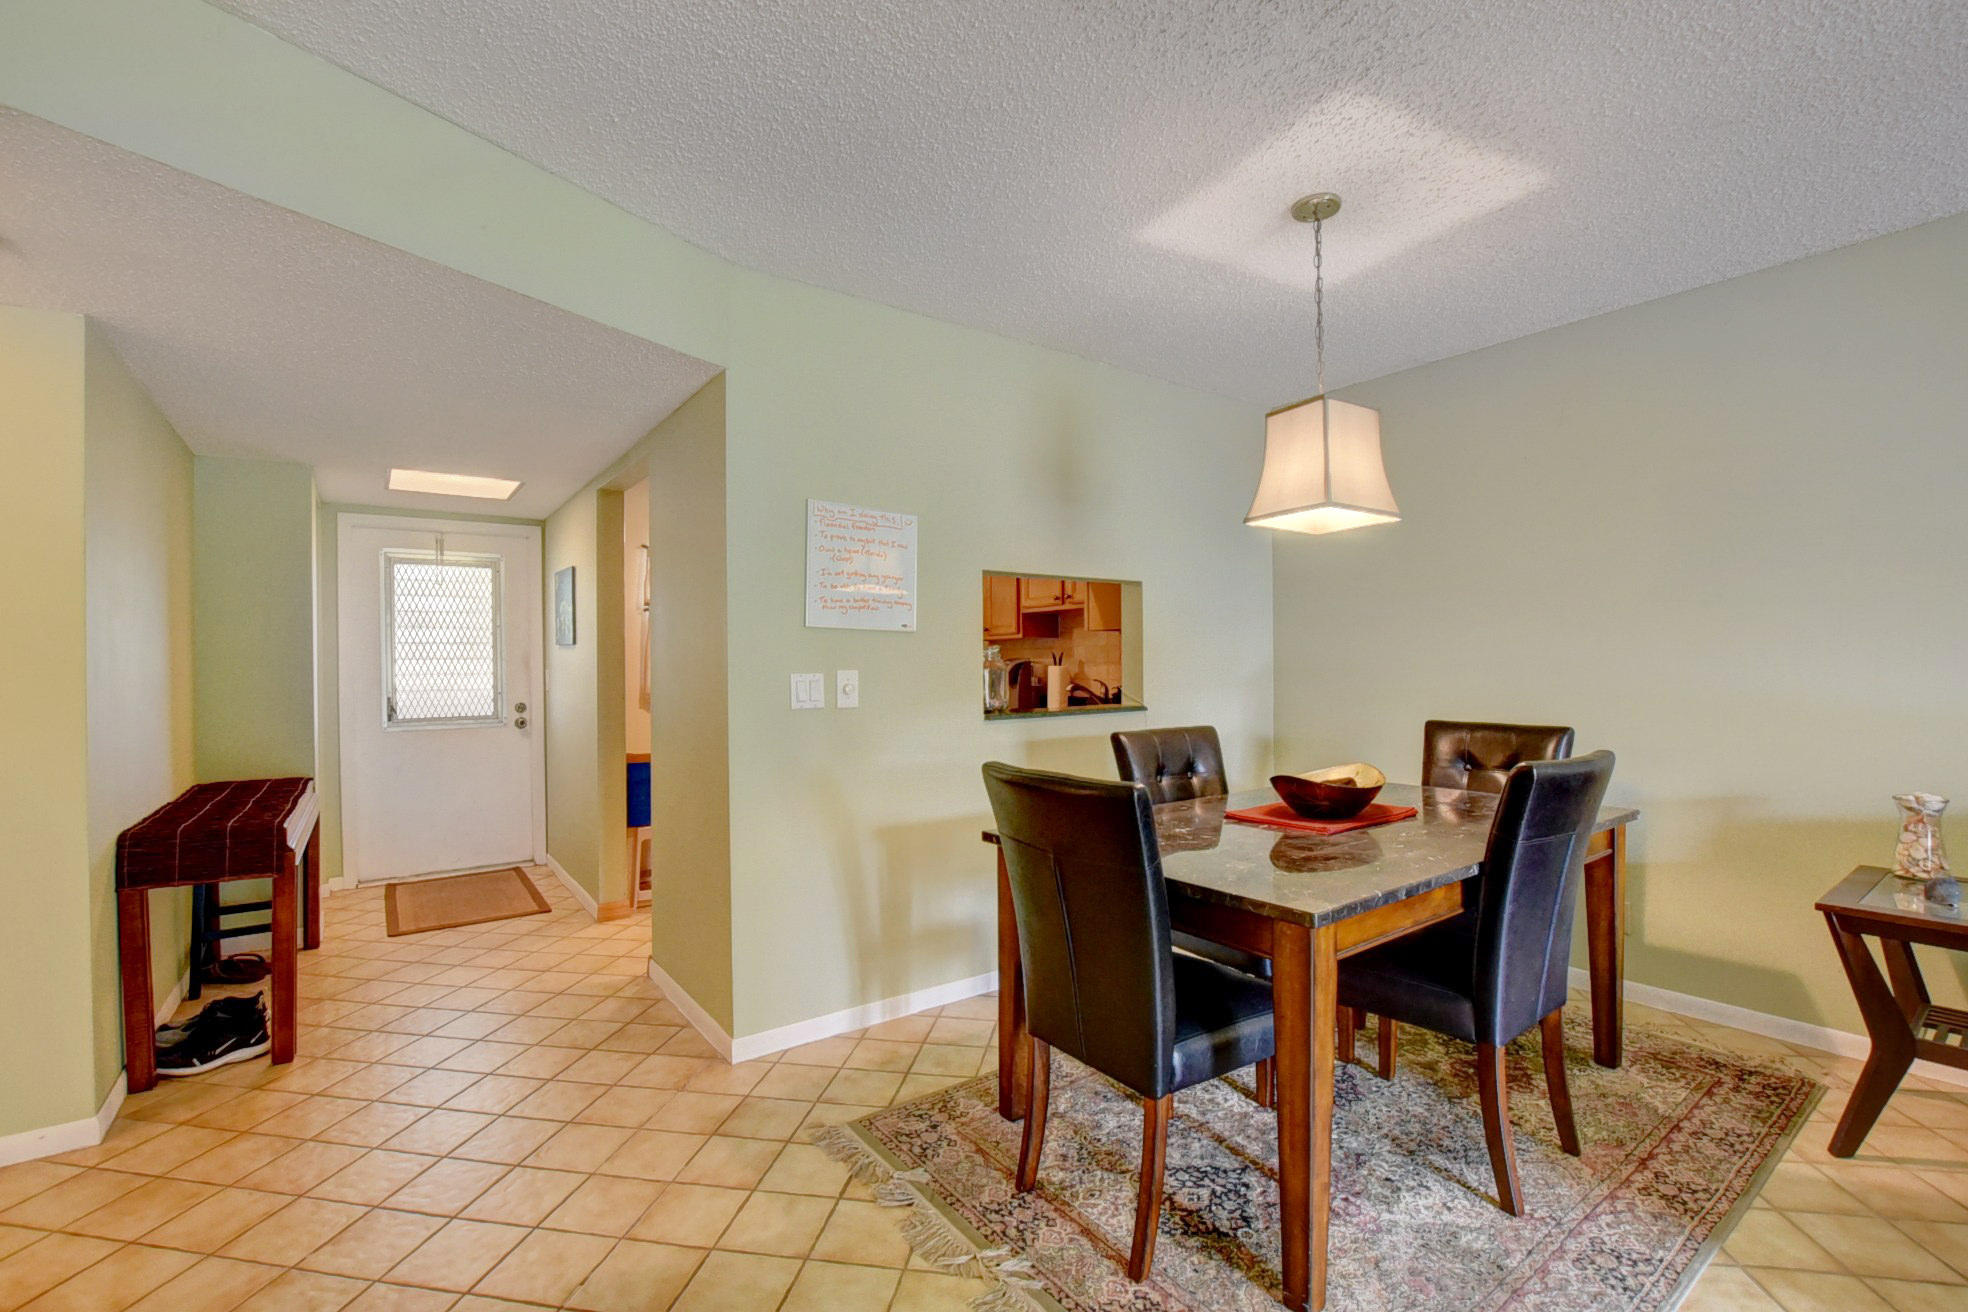 Details for 2900 Fiore Way 206, Delray Beach, FL 33445